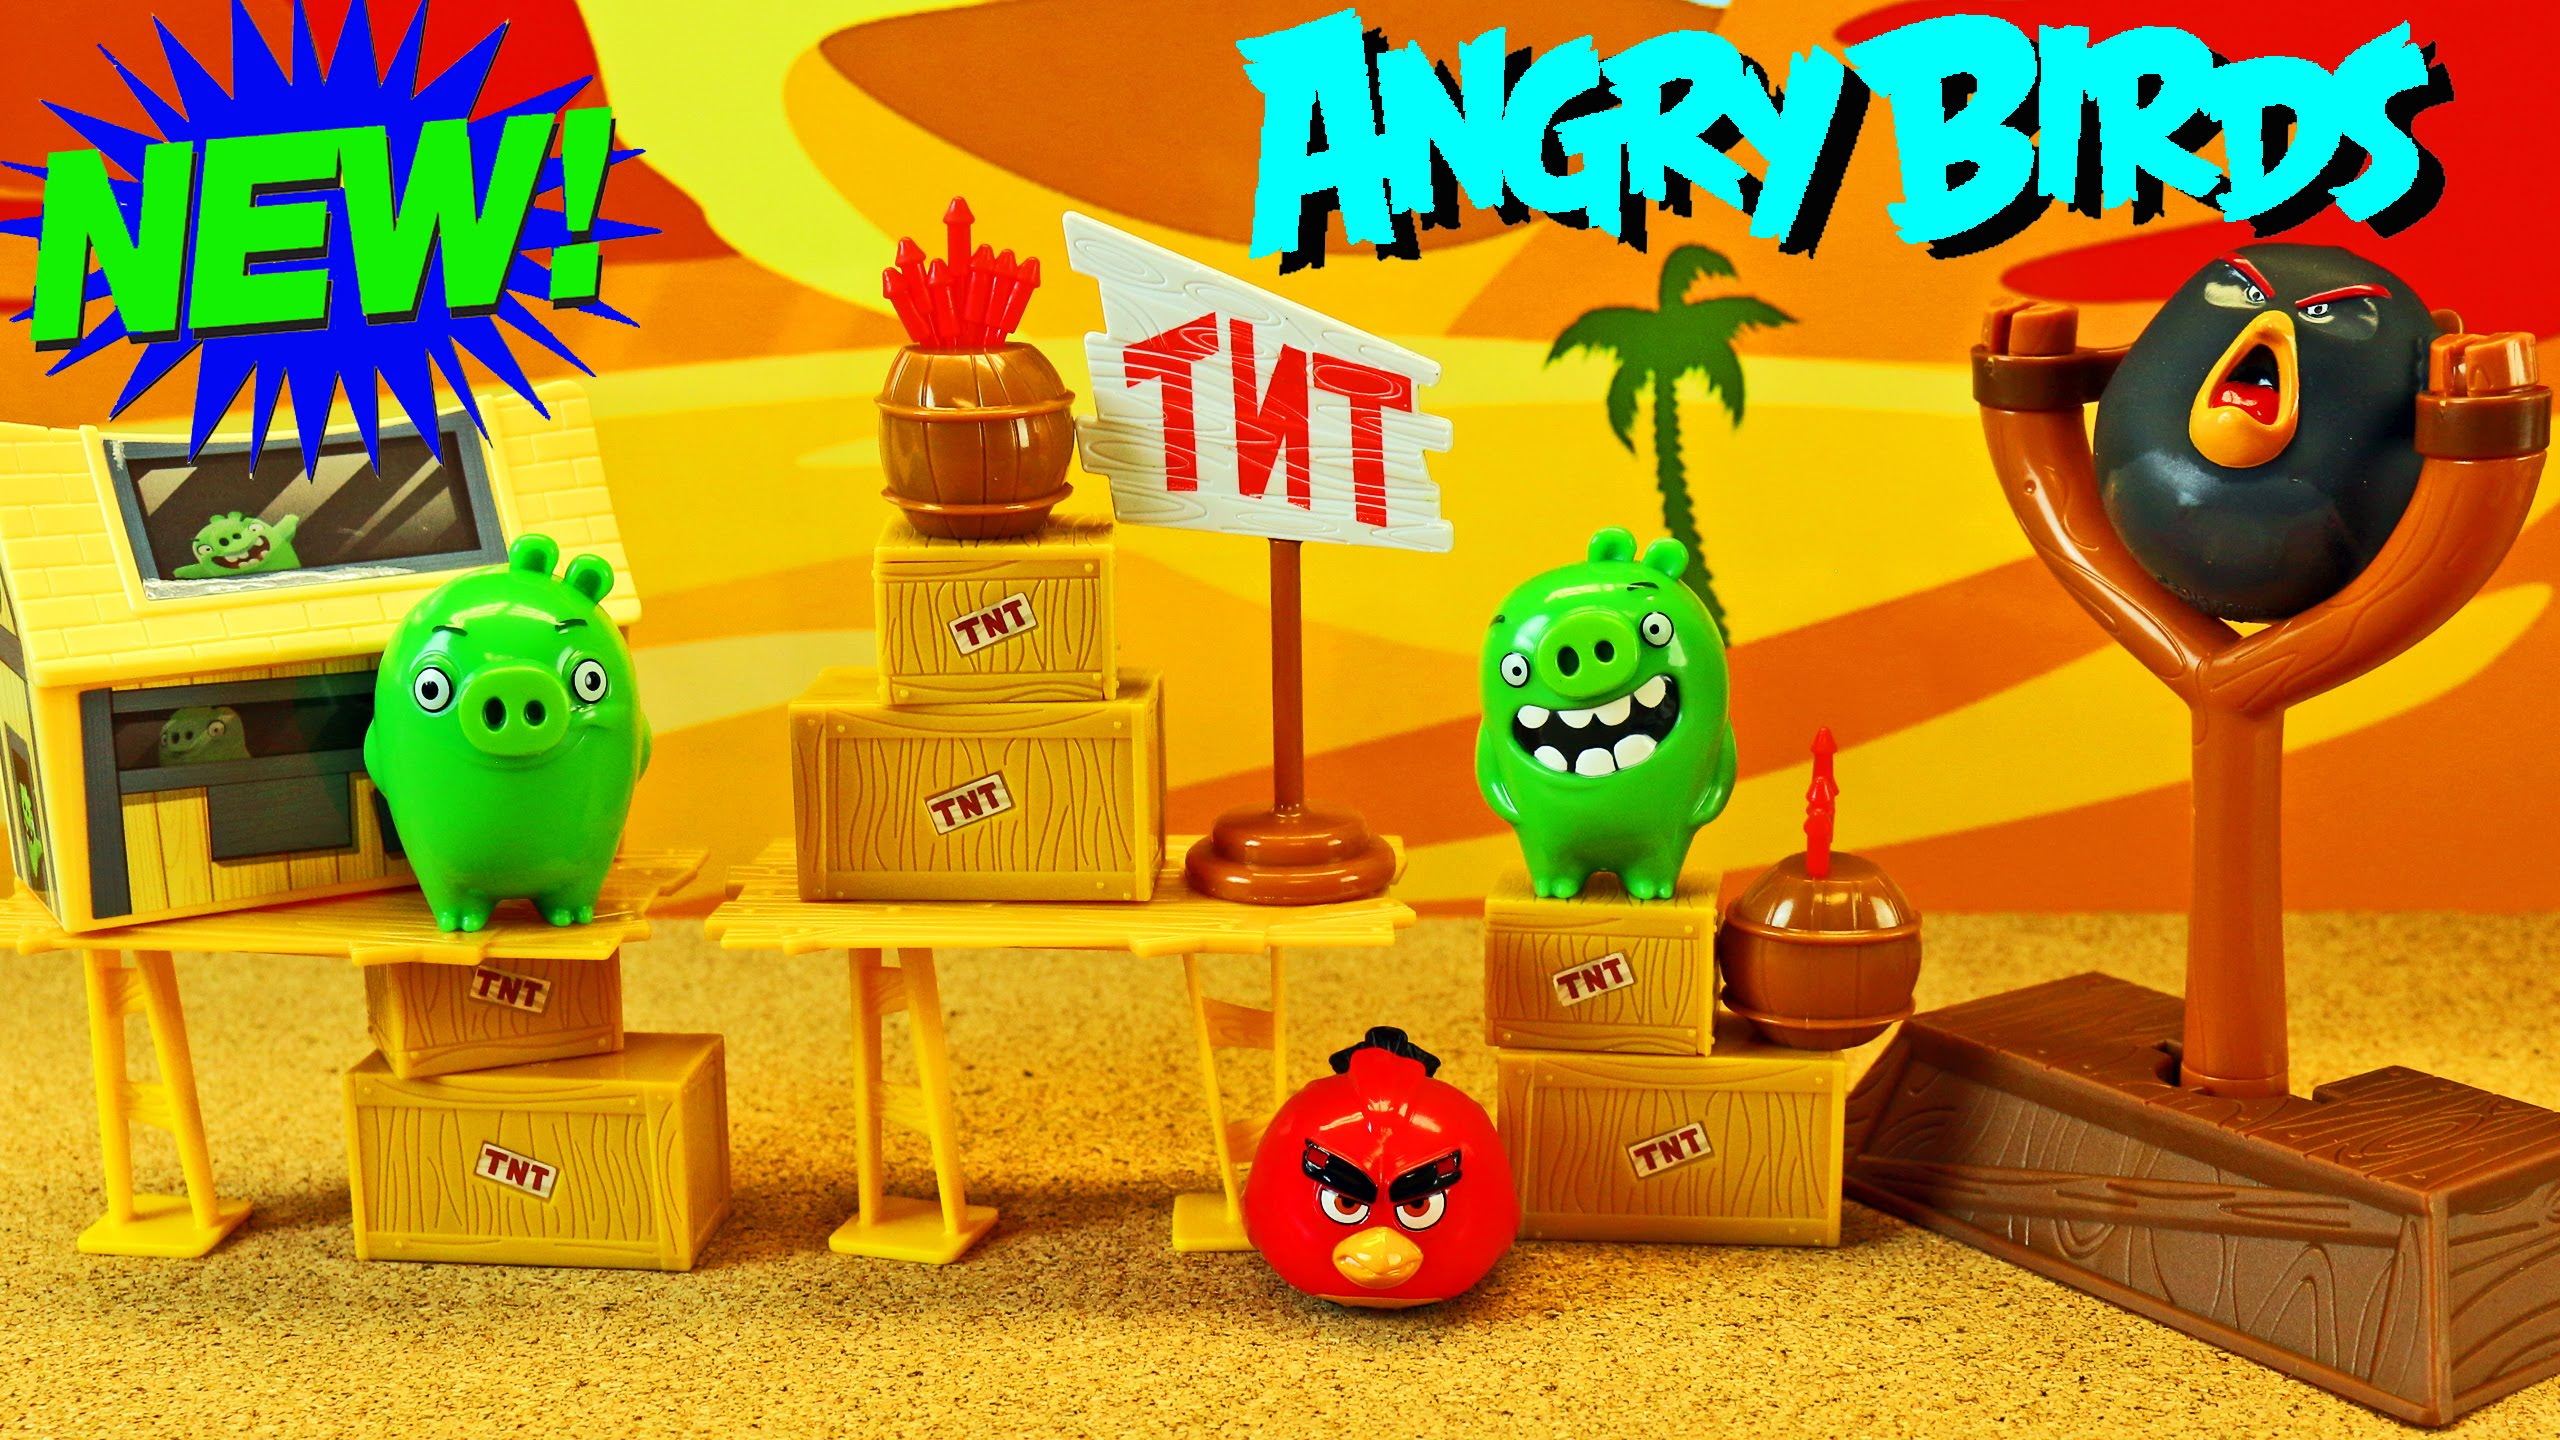 New Angry Birds Movie Toys Red Bird Giant Bomb Destroy Bad Piggies